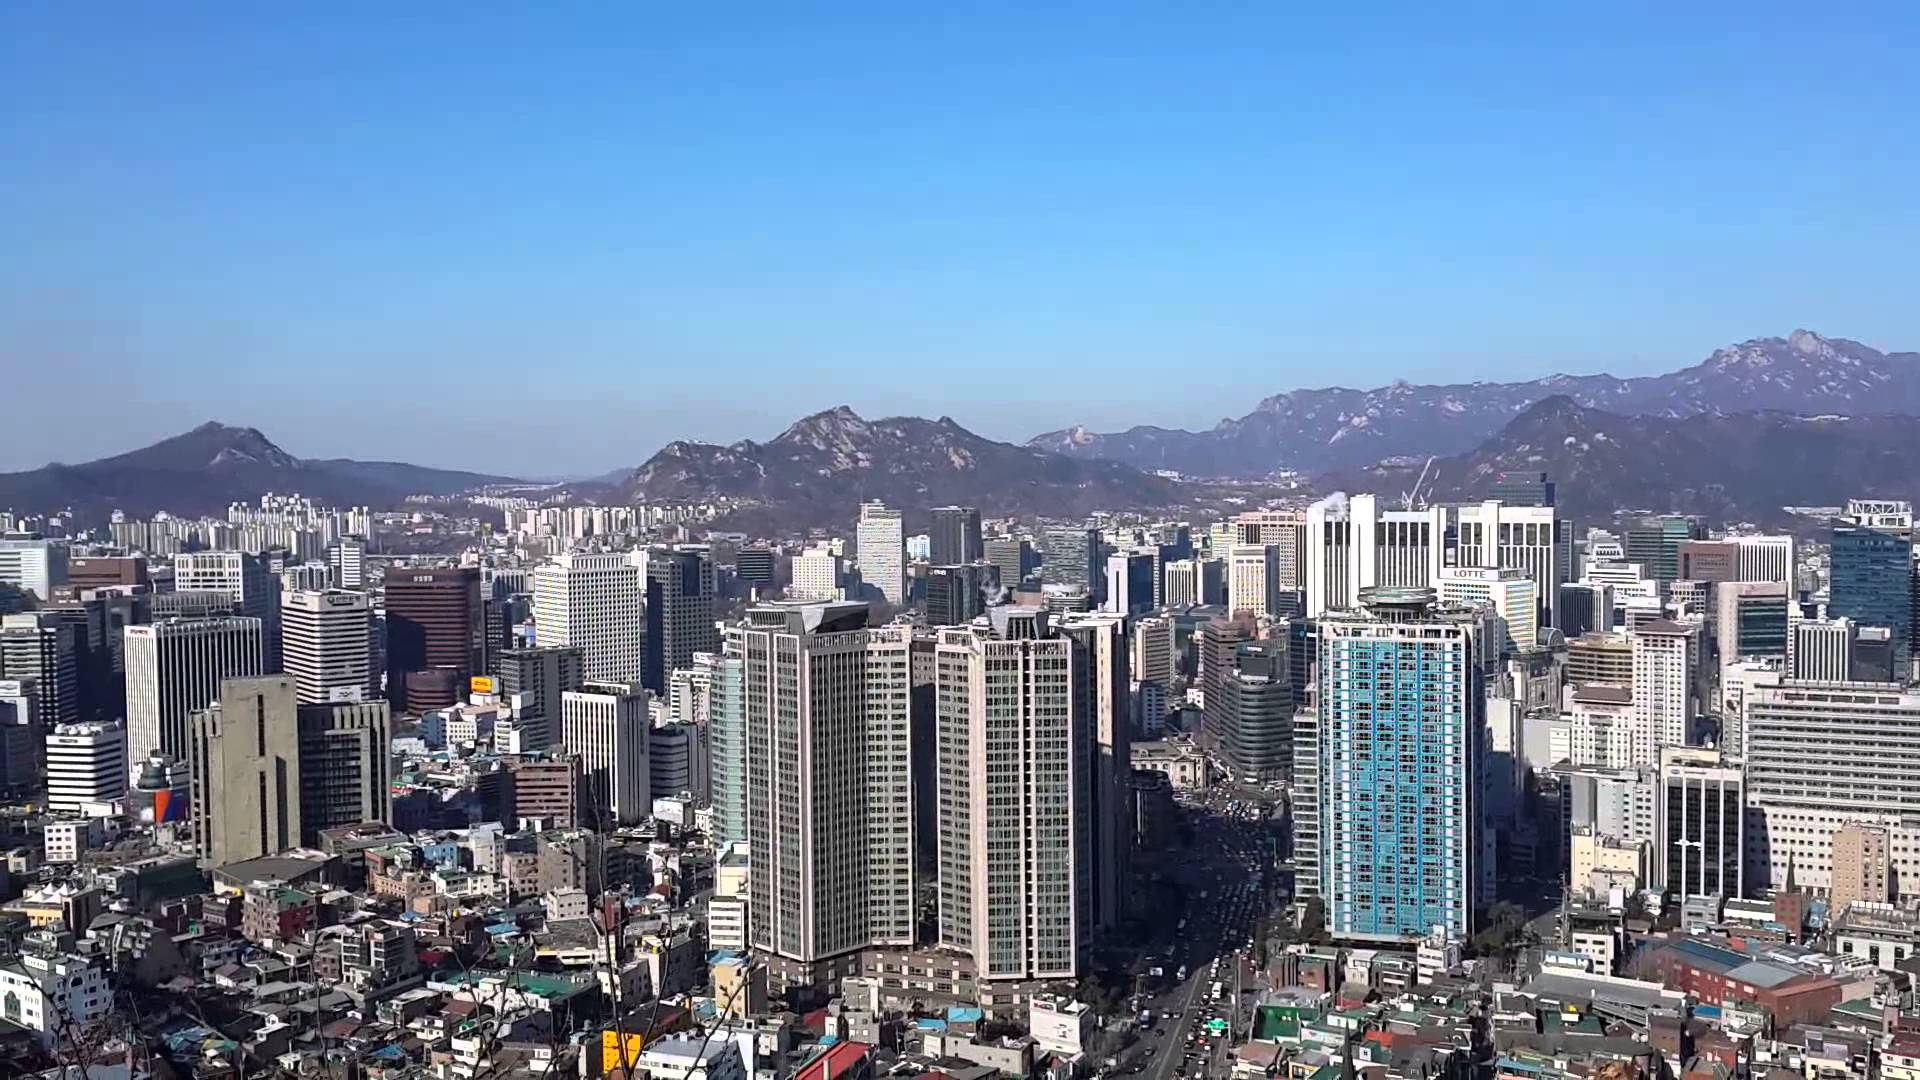 Seoul City View from Namsan Park - YouTube